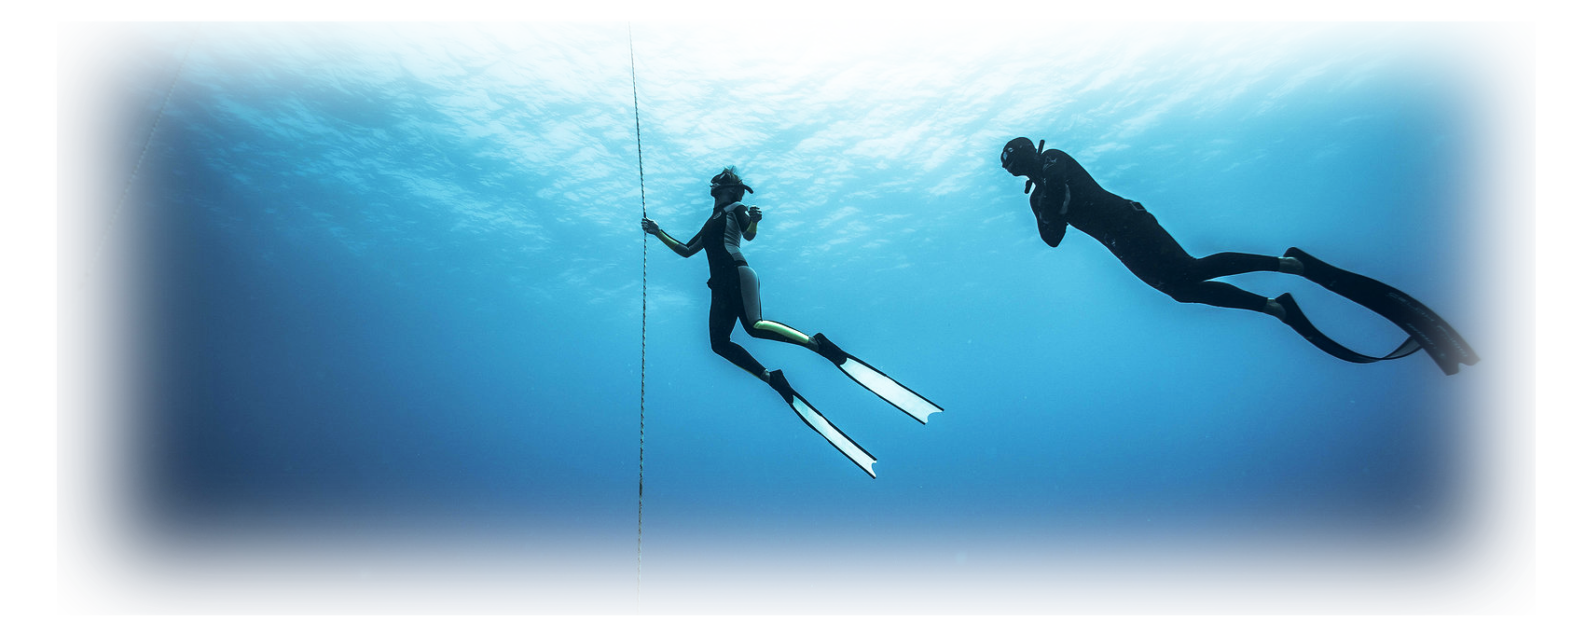 FREEDIVING-HOME